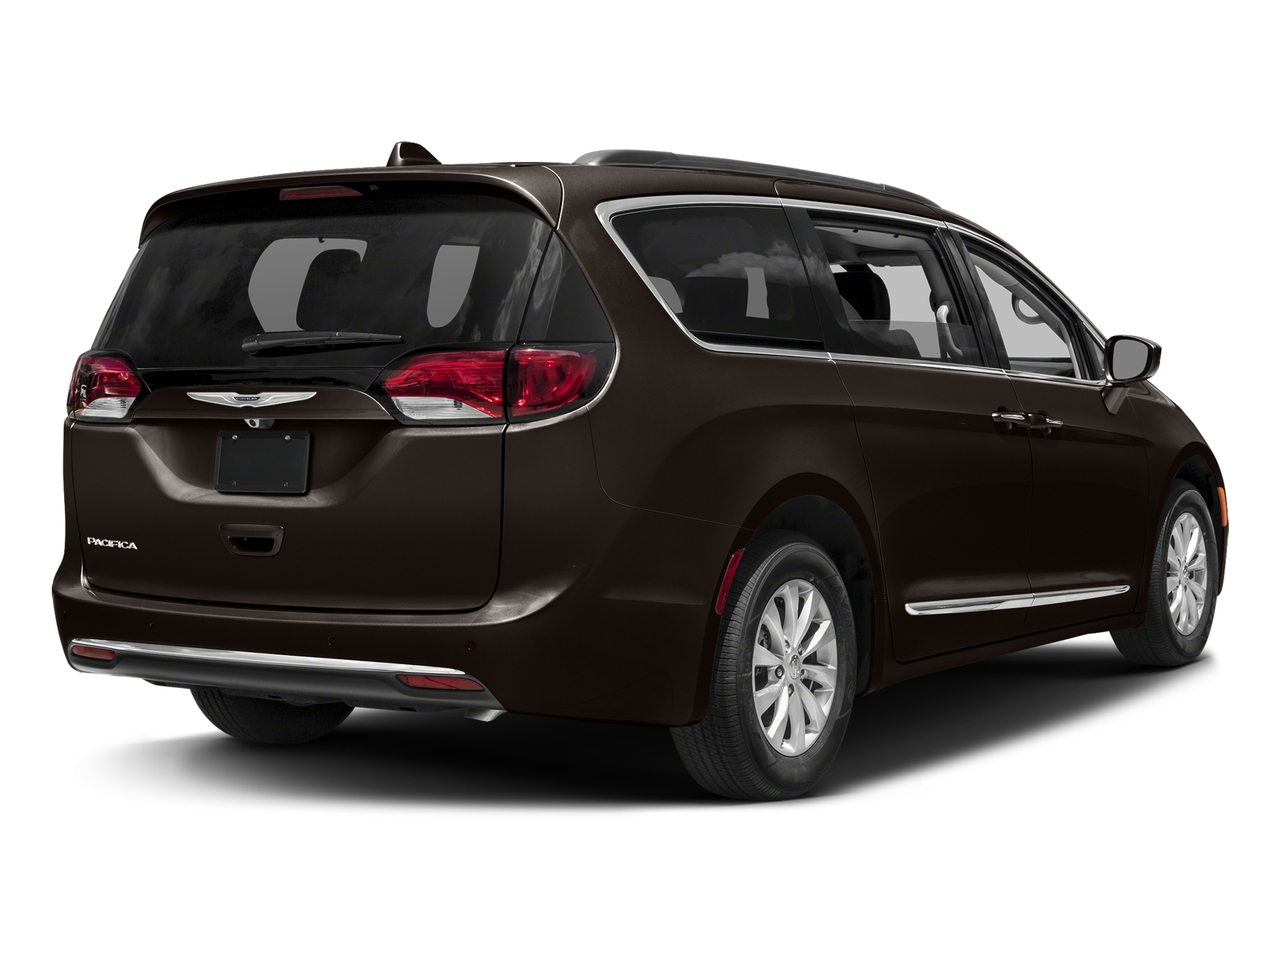 2017 Chrysler Pacifica TOURING L Minivan Slide